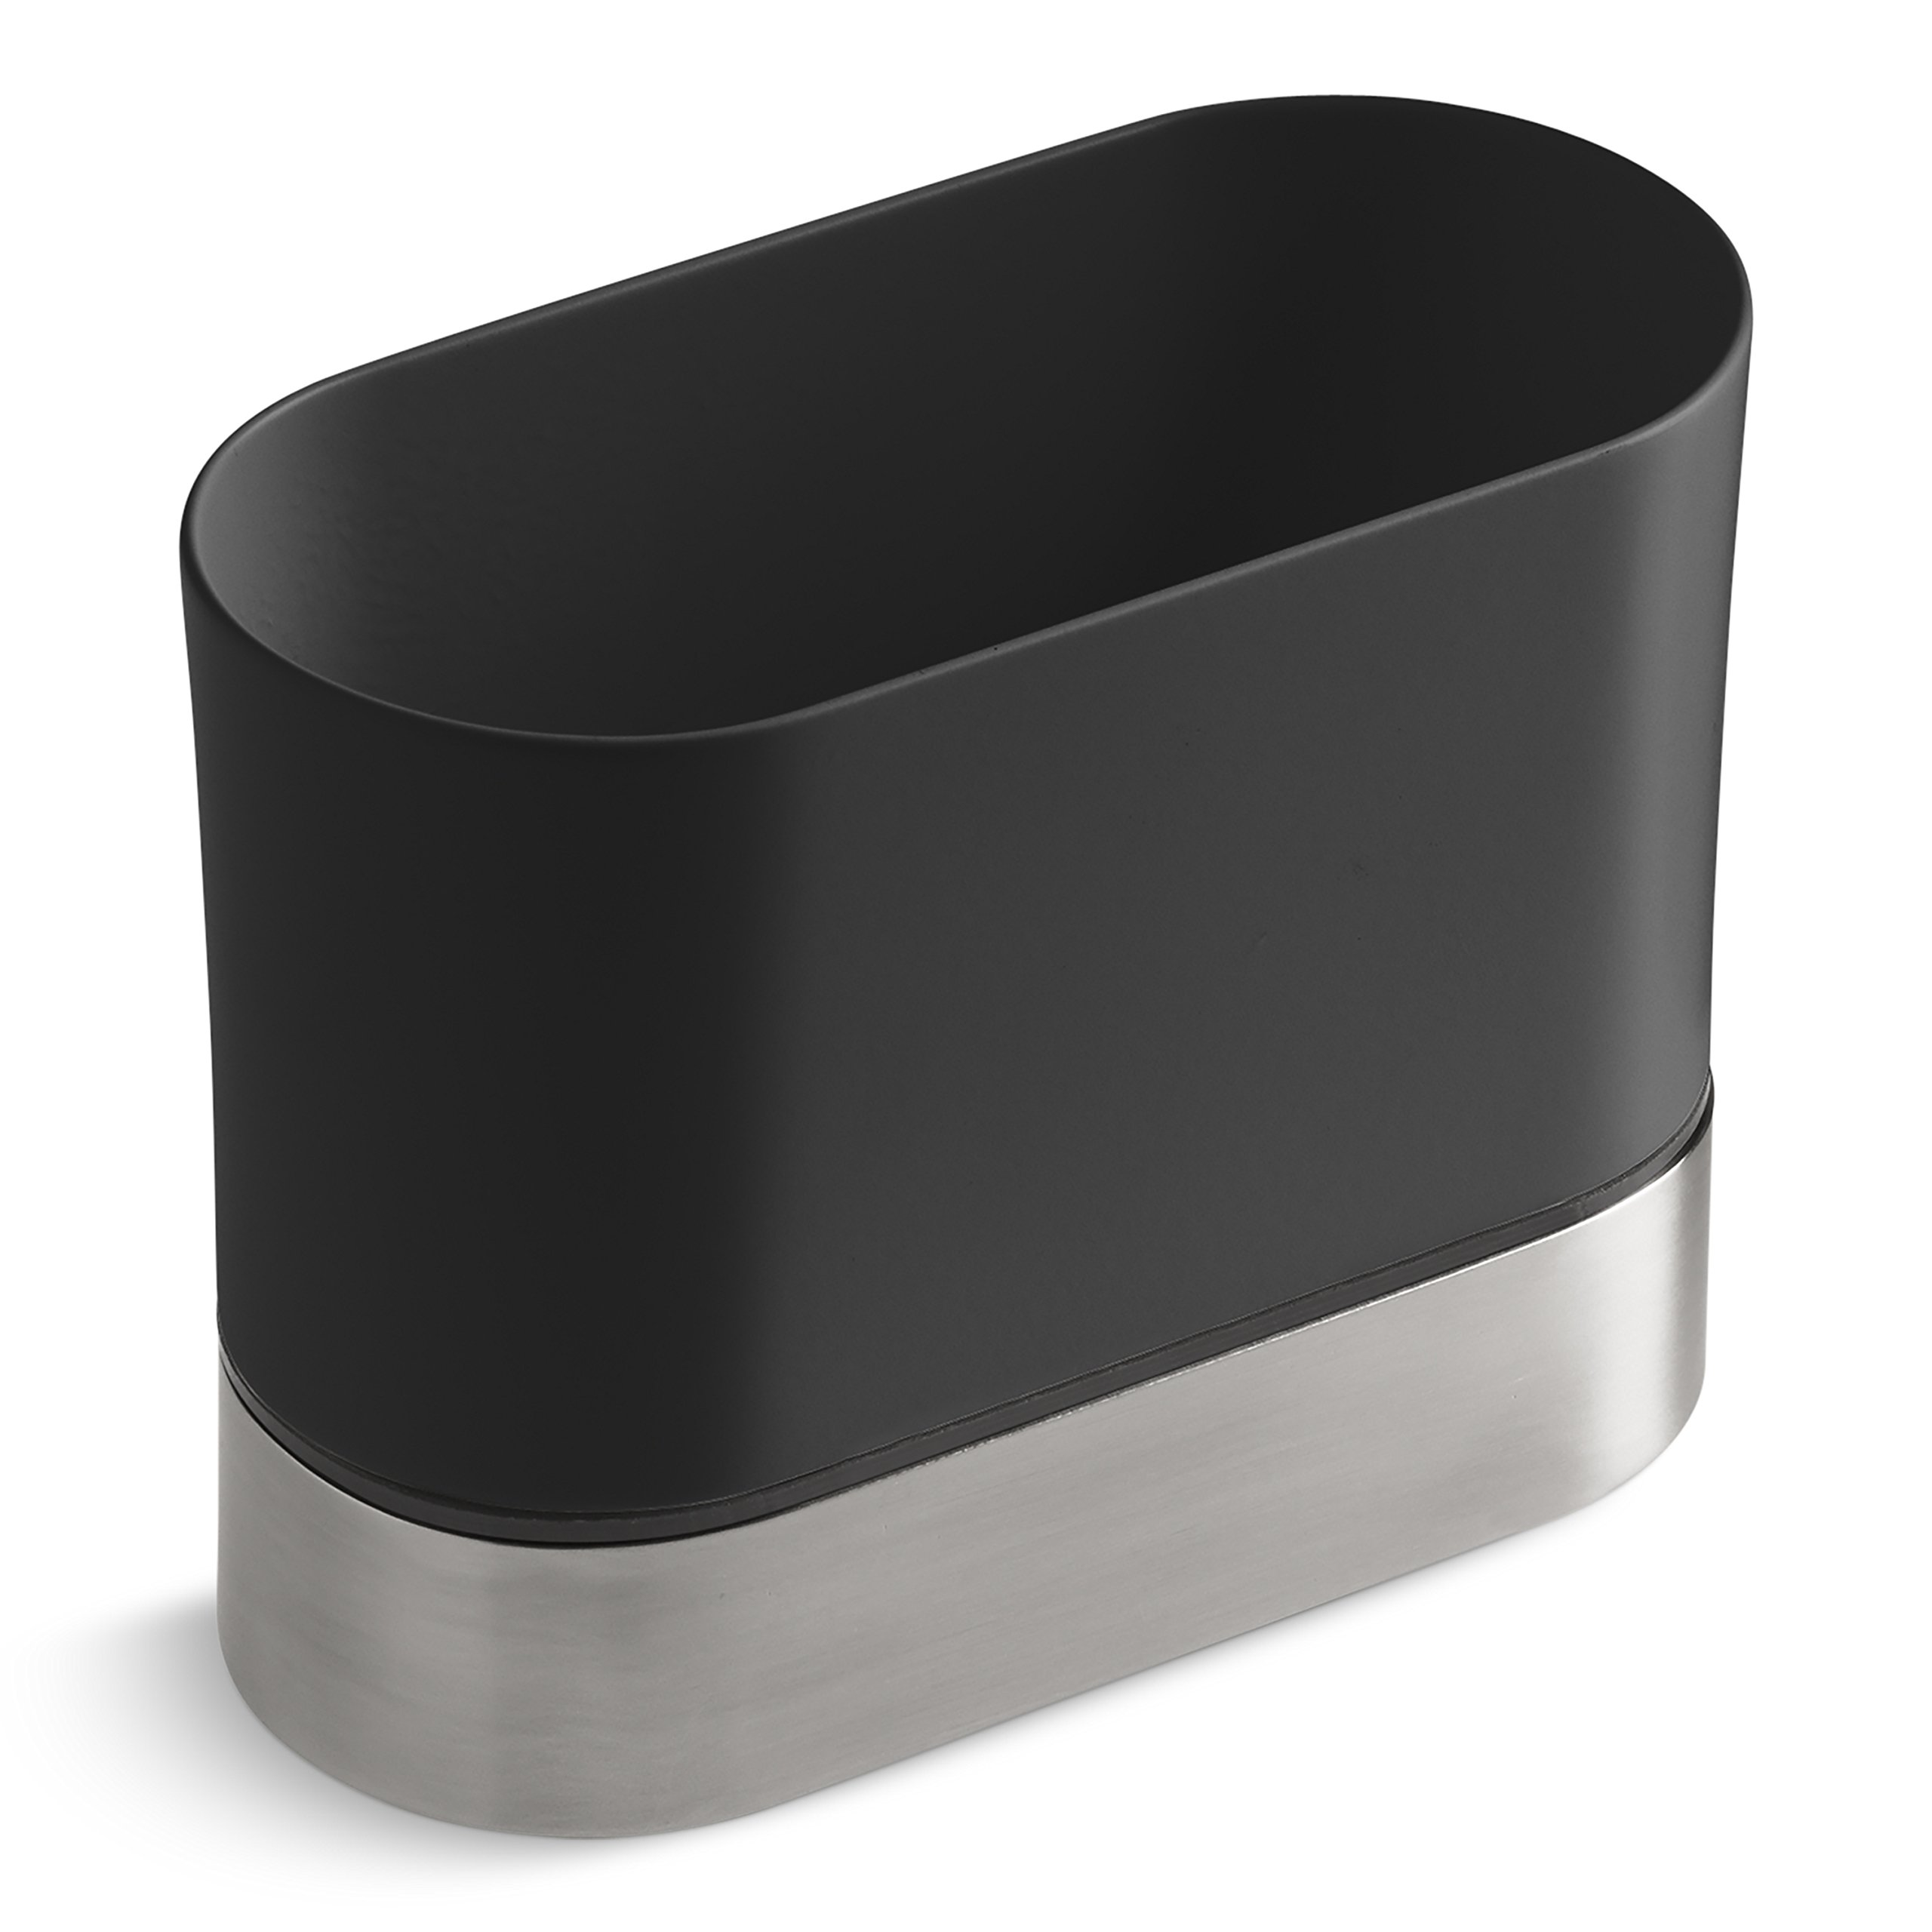 KOHLER Kitchen Dish Brush Holder, Sink Caddy, Silicone and Stainless Steel, Charcoal by Unknown